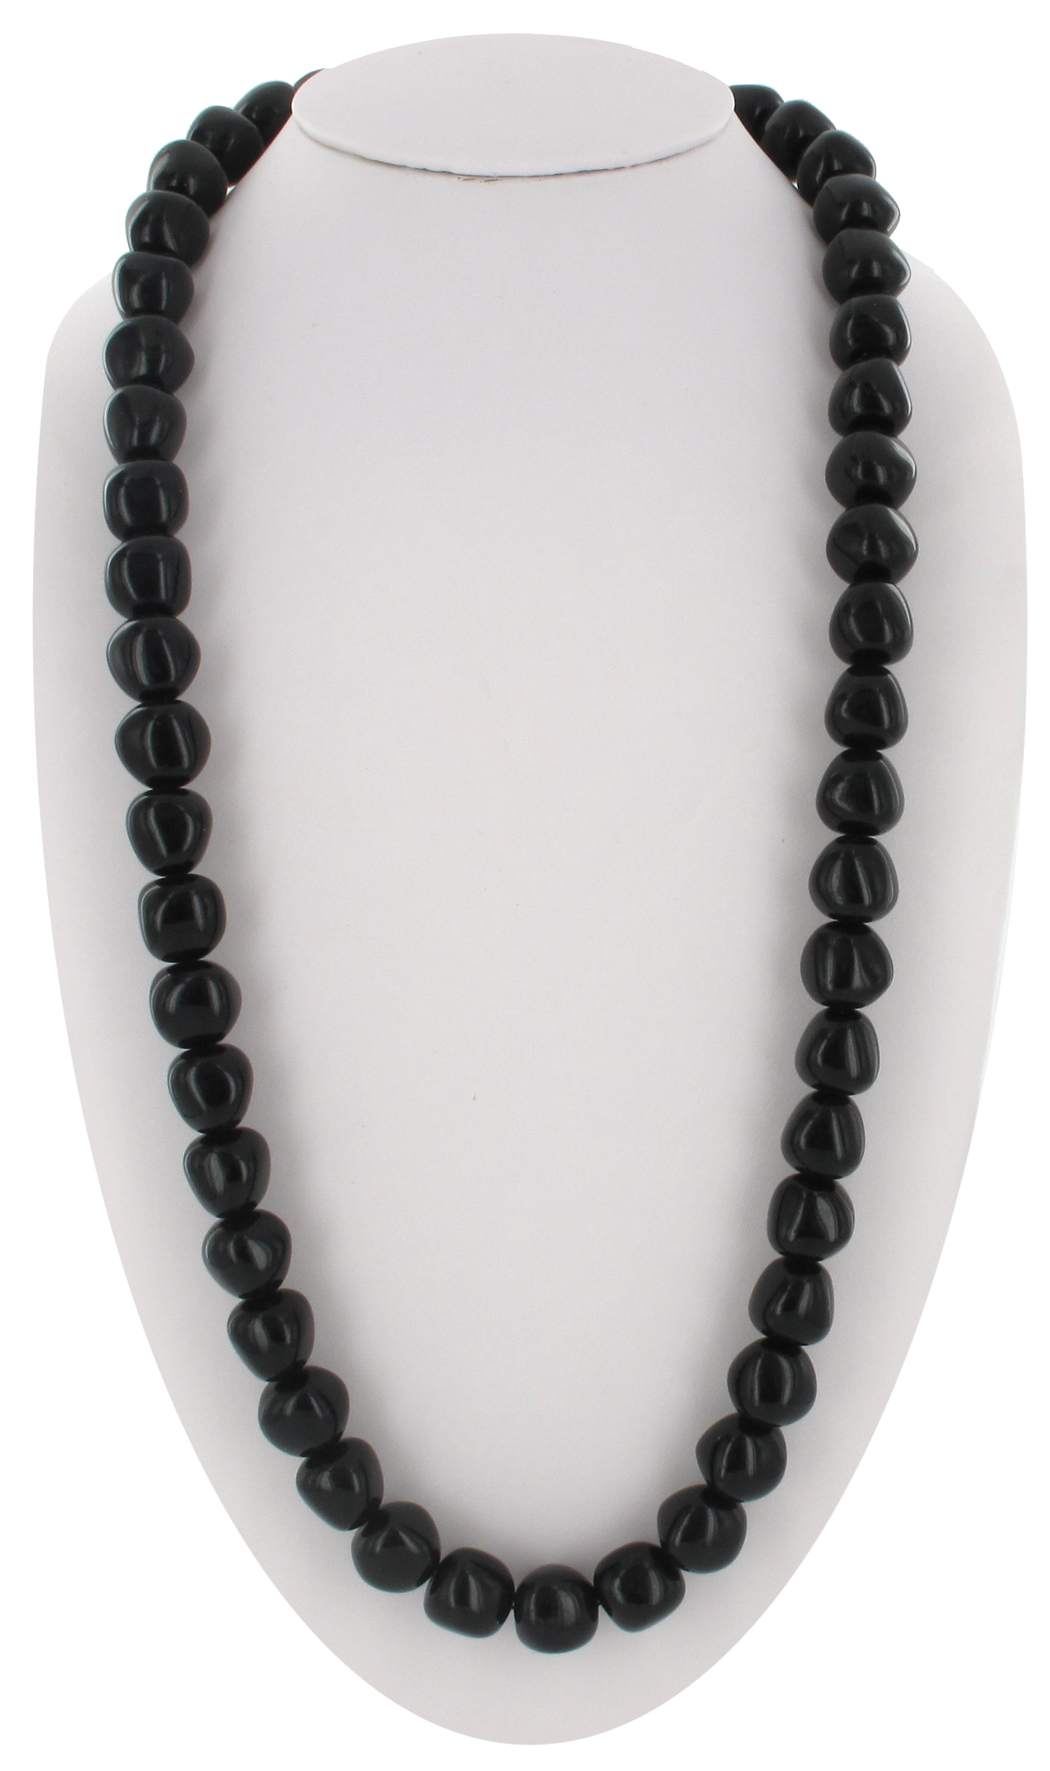 "Vintage Black Lucite Beaded Necklace Long 30"" Made in Haiti"